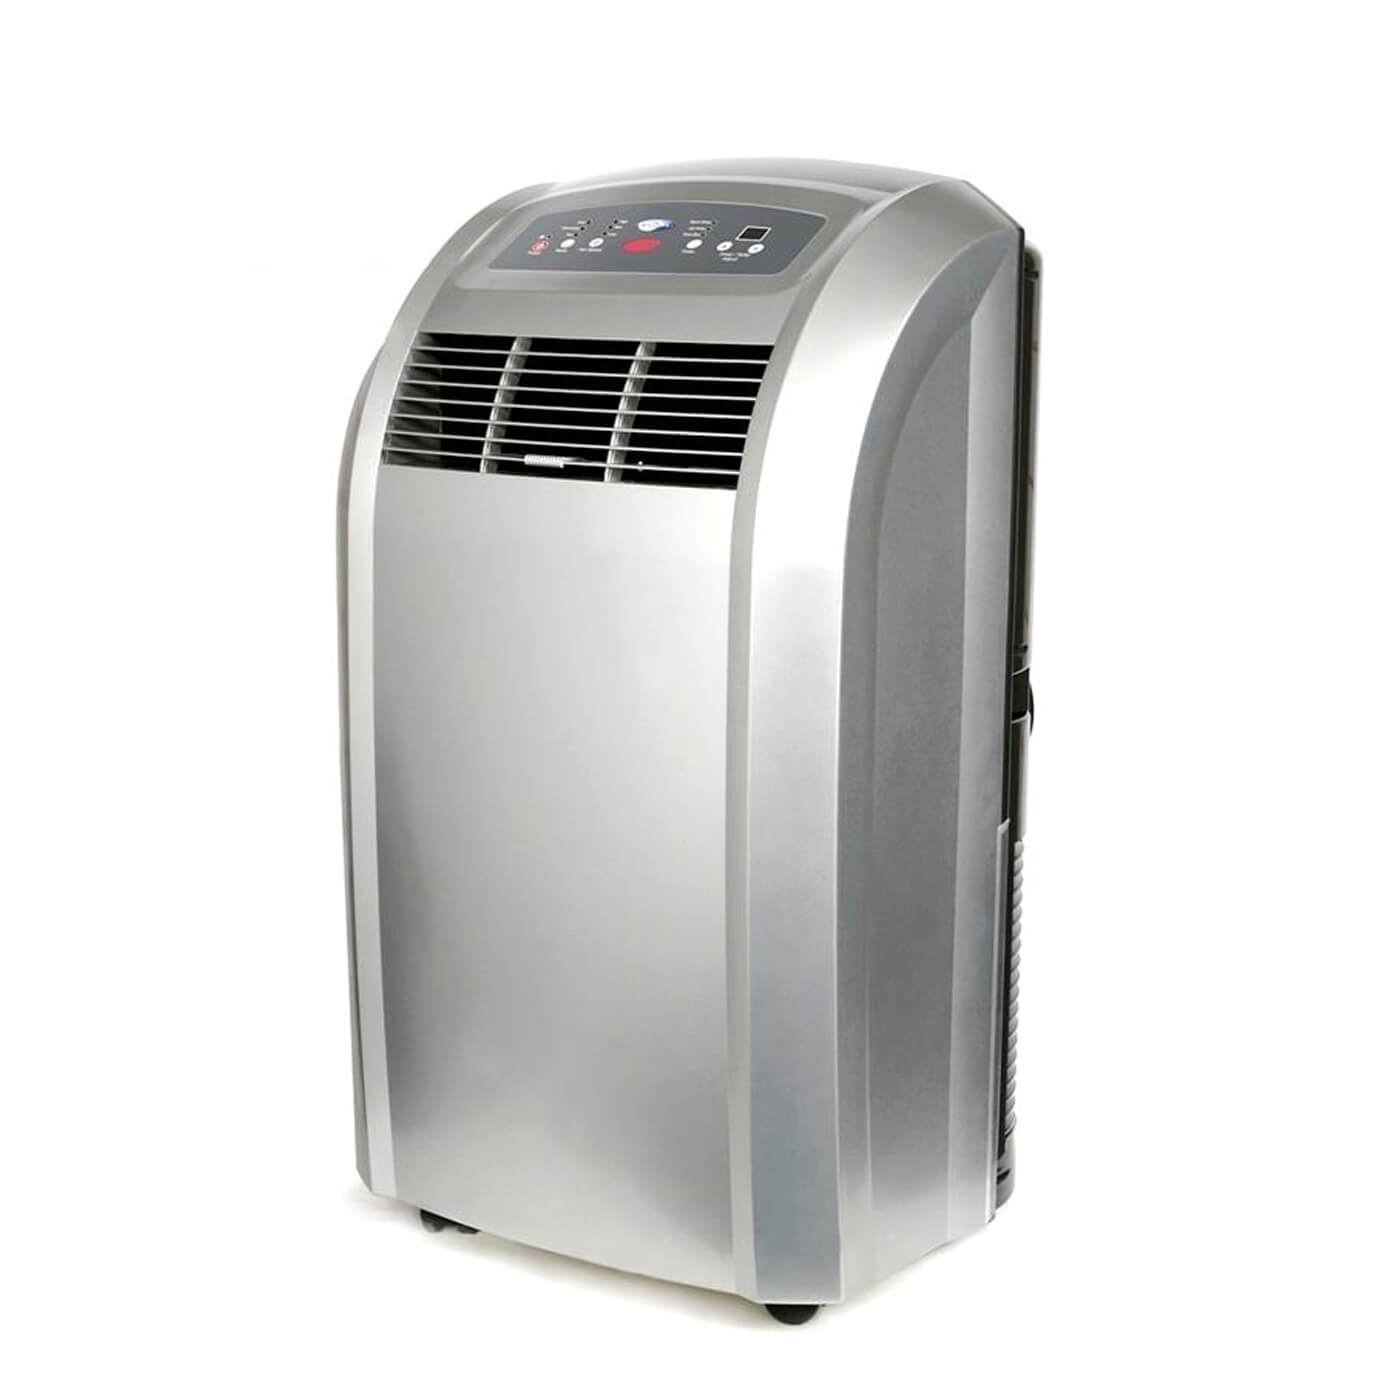 Portable Air Conditioner 12000 Btu Arc 12s Whynter Eco Friendly 12000 Btu Portable Air